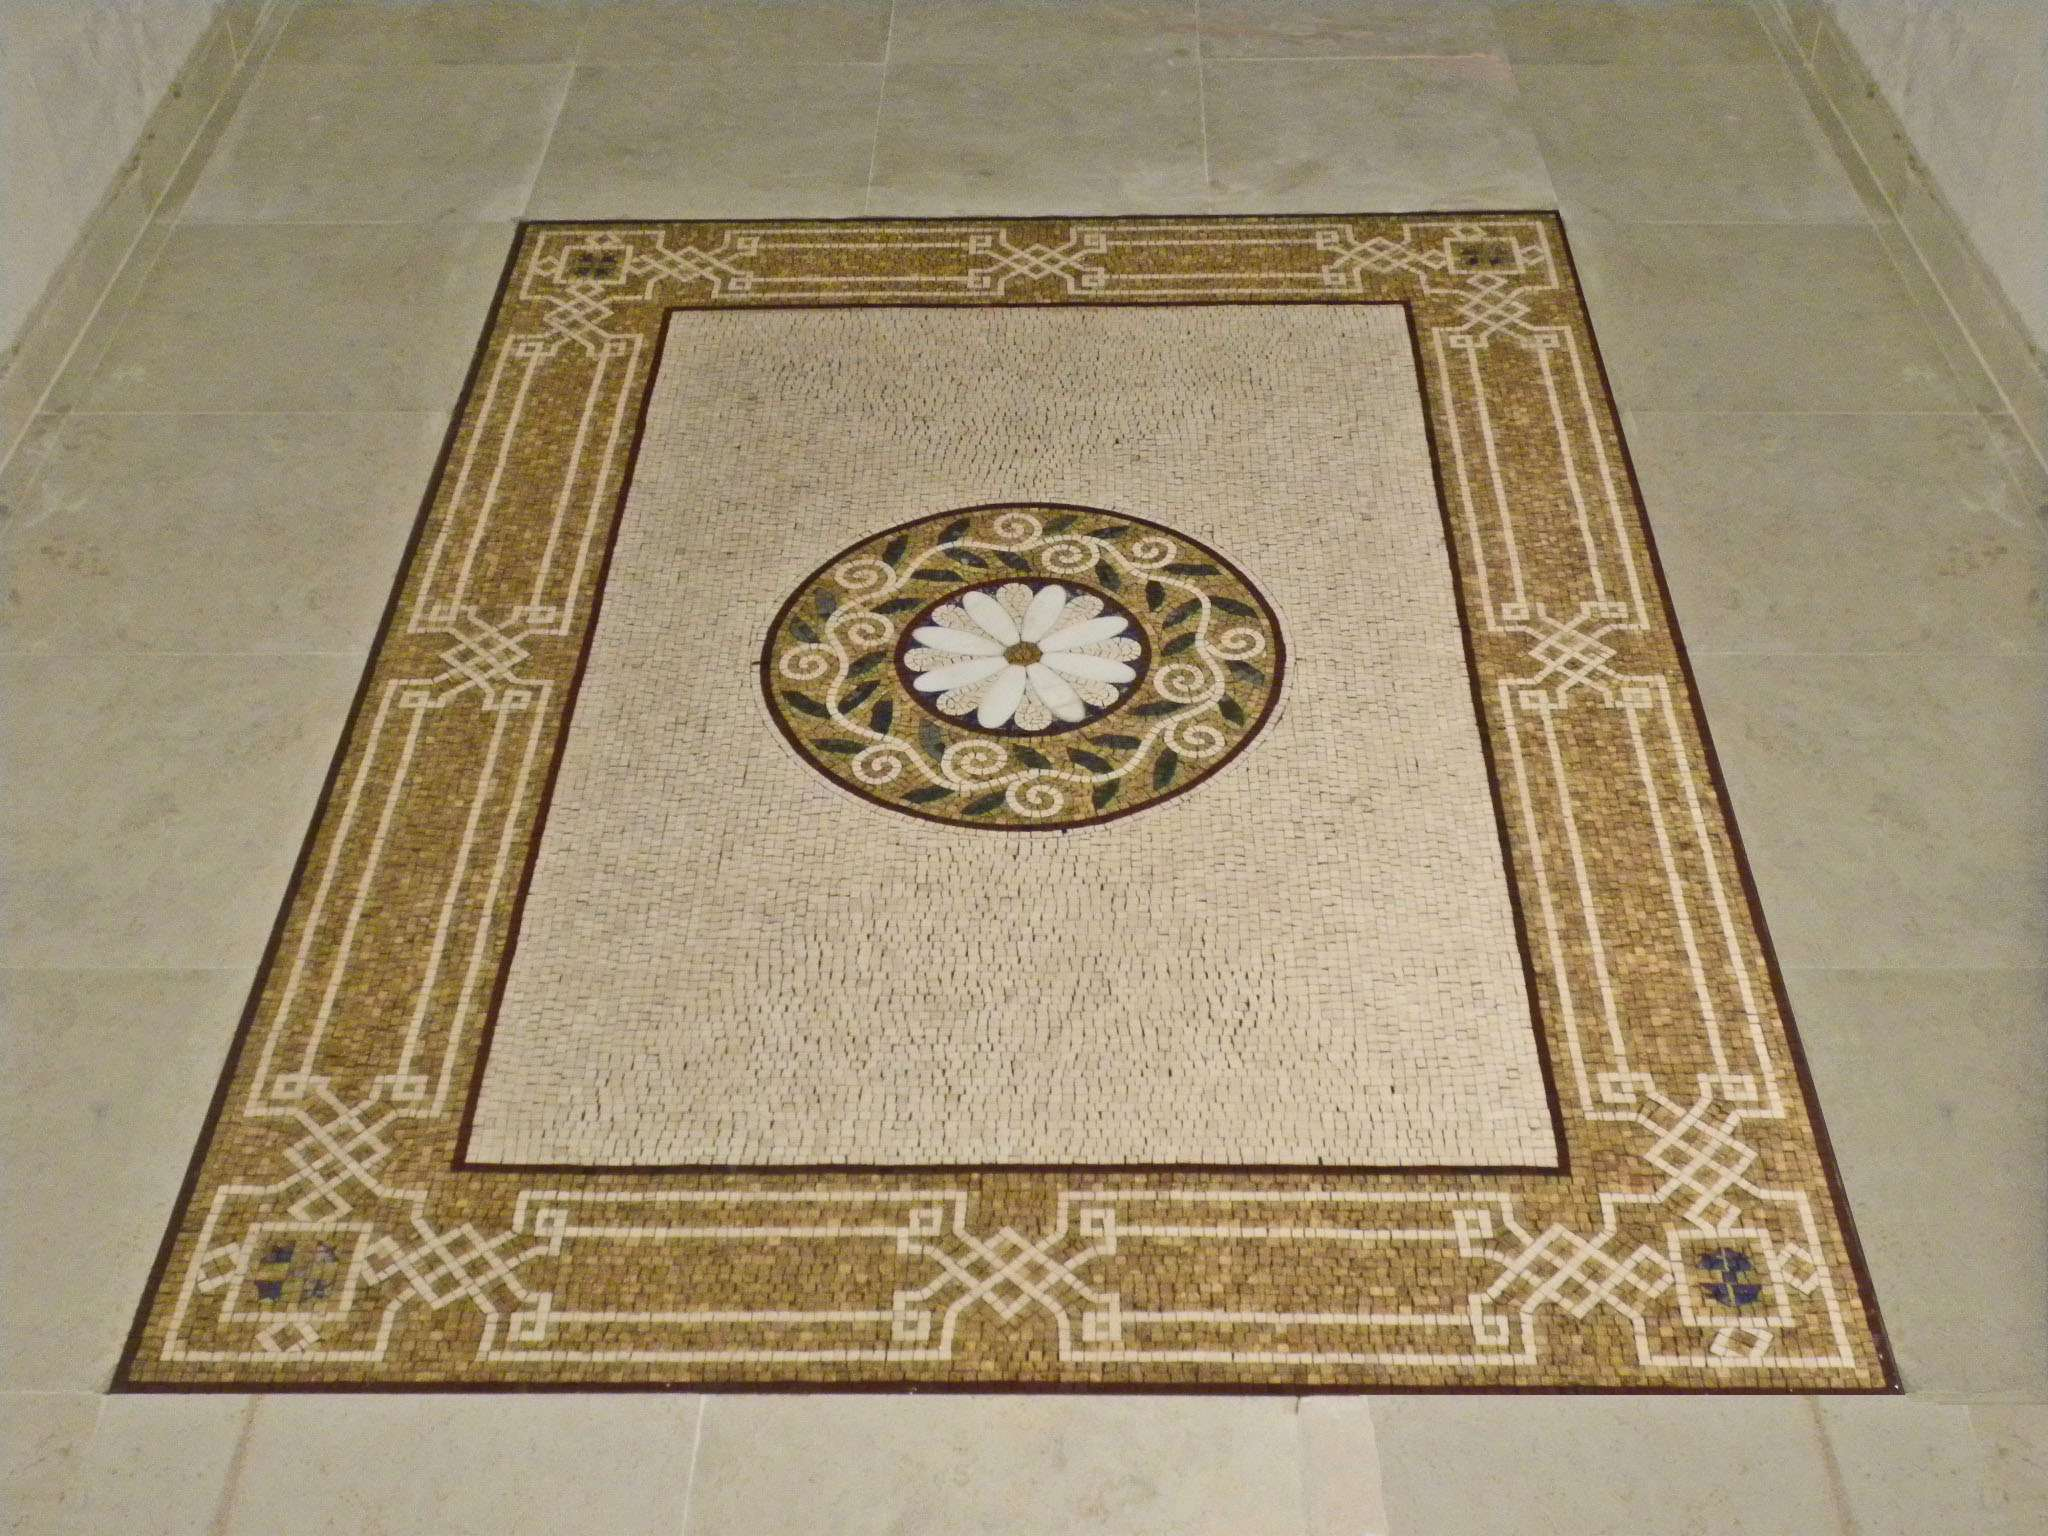 square-mosaic-rug-tile-floor